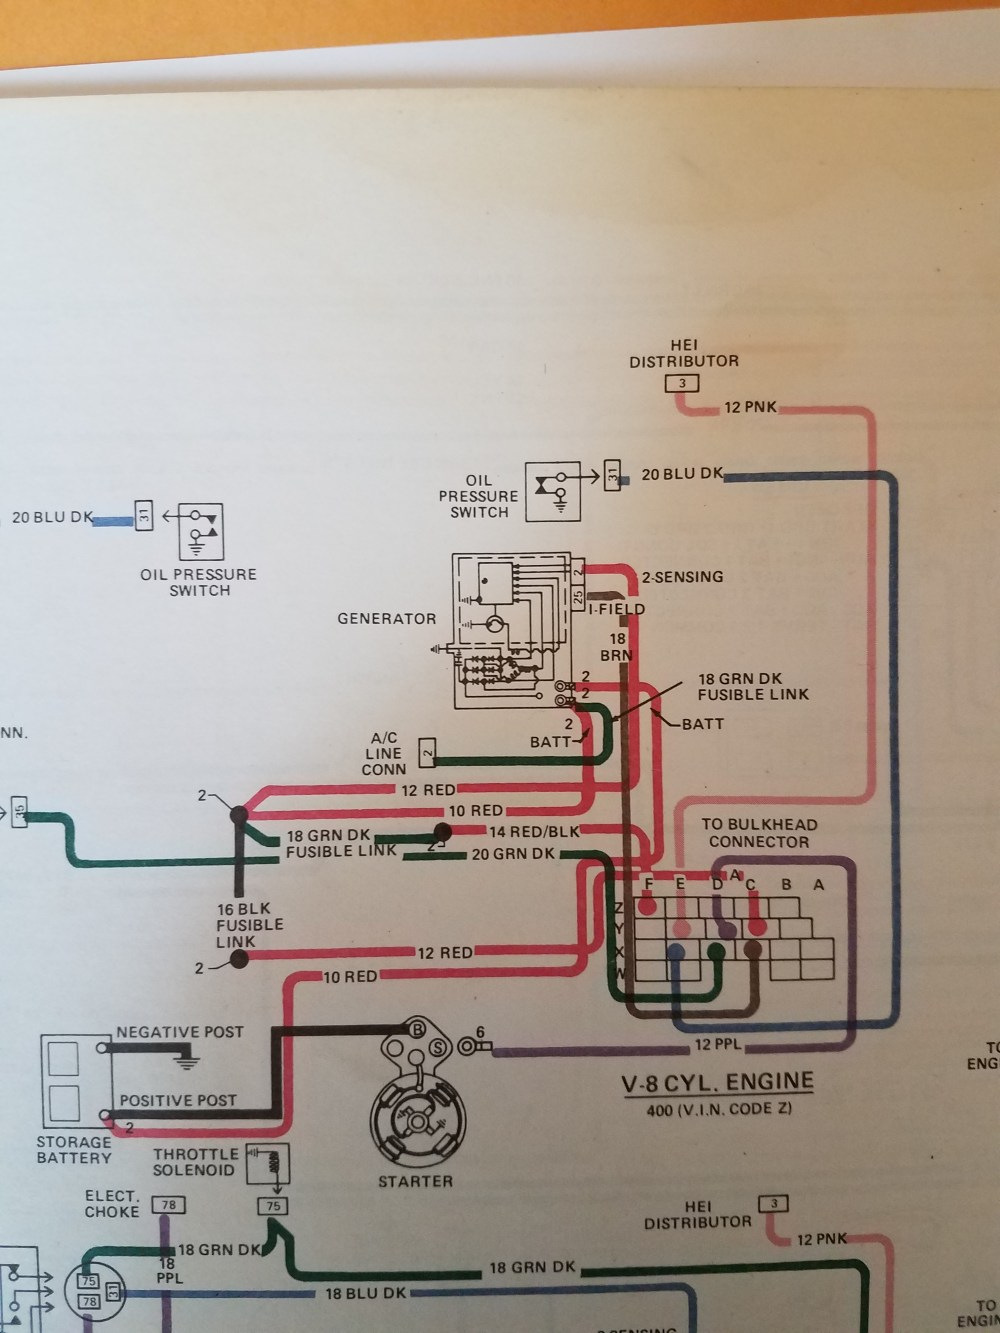 medium resolution of 1980 trans am wiring diagram wiring diagram paper 79 trans am gauge wiring diagram 1980 trans